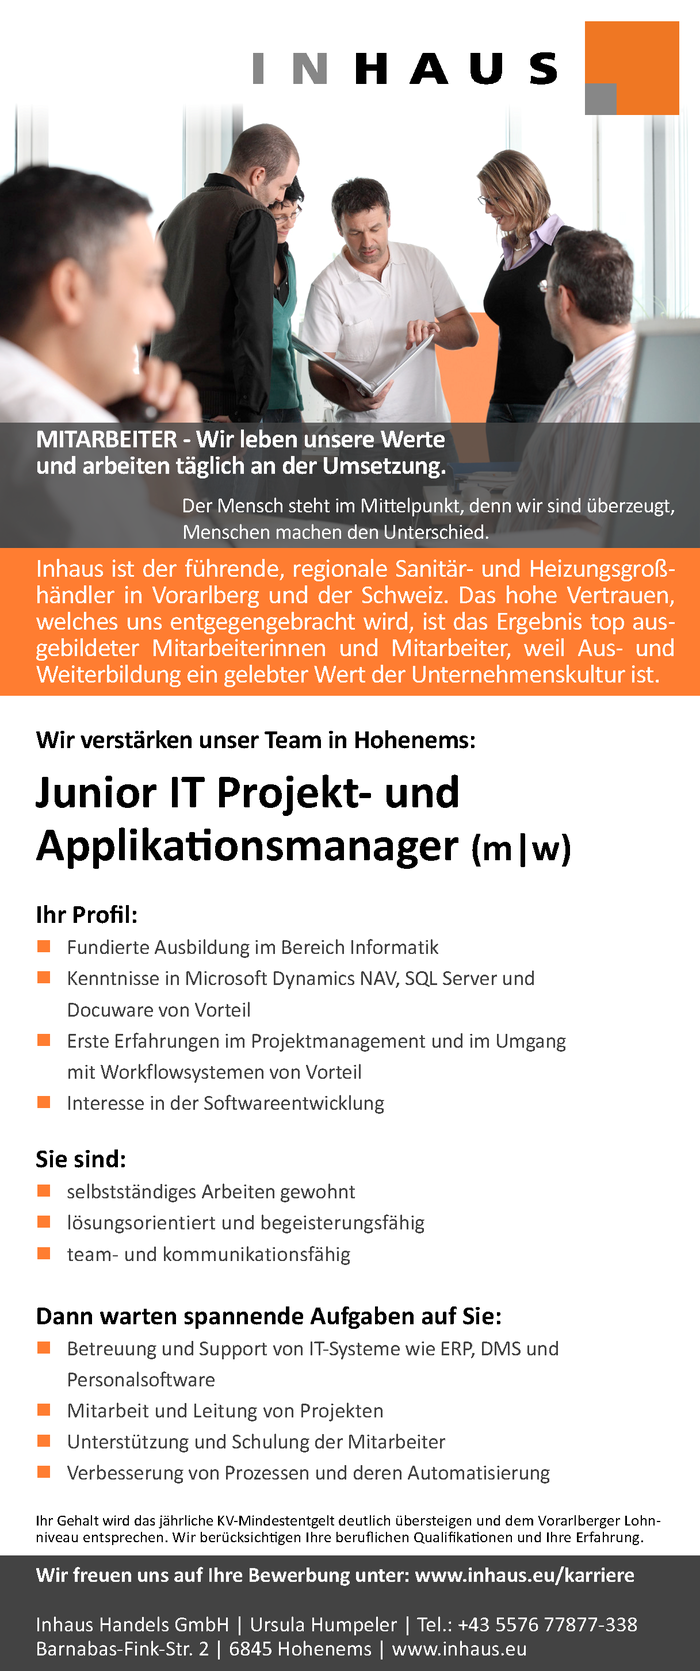 Junior IT Projekt- und Applikationsmanager (m|w)